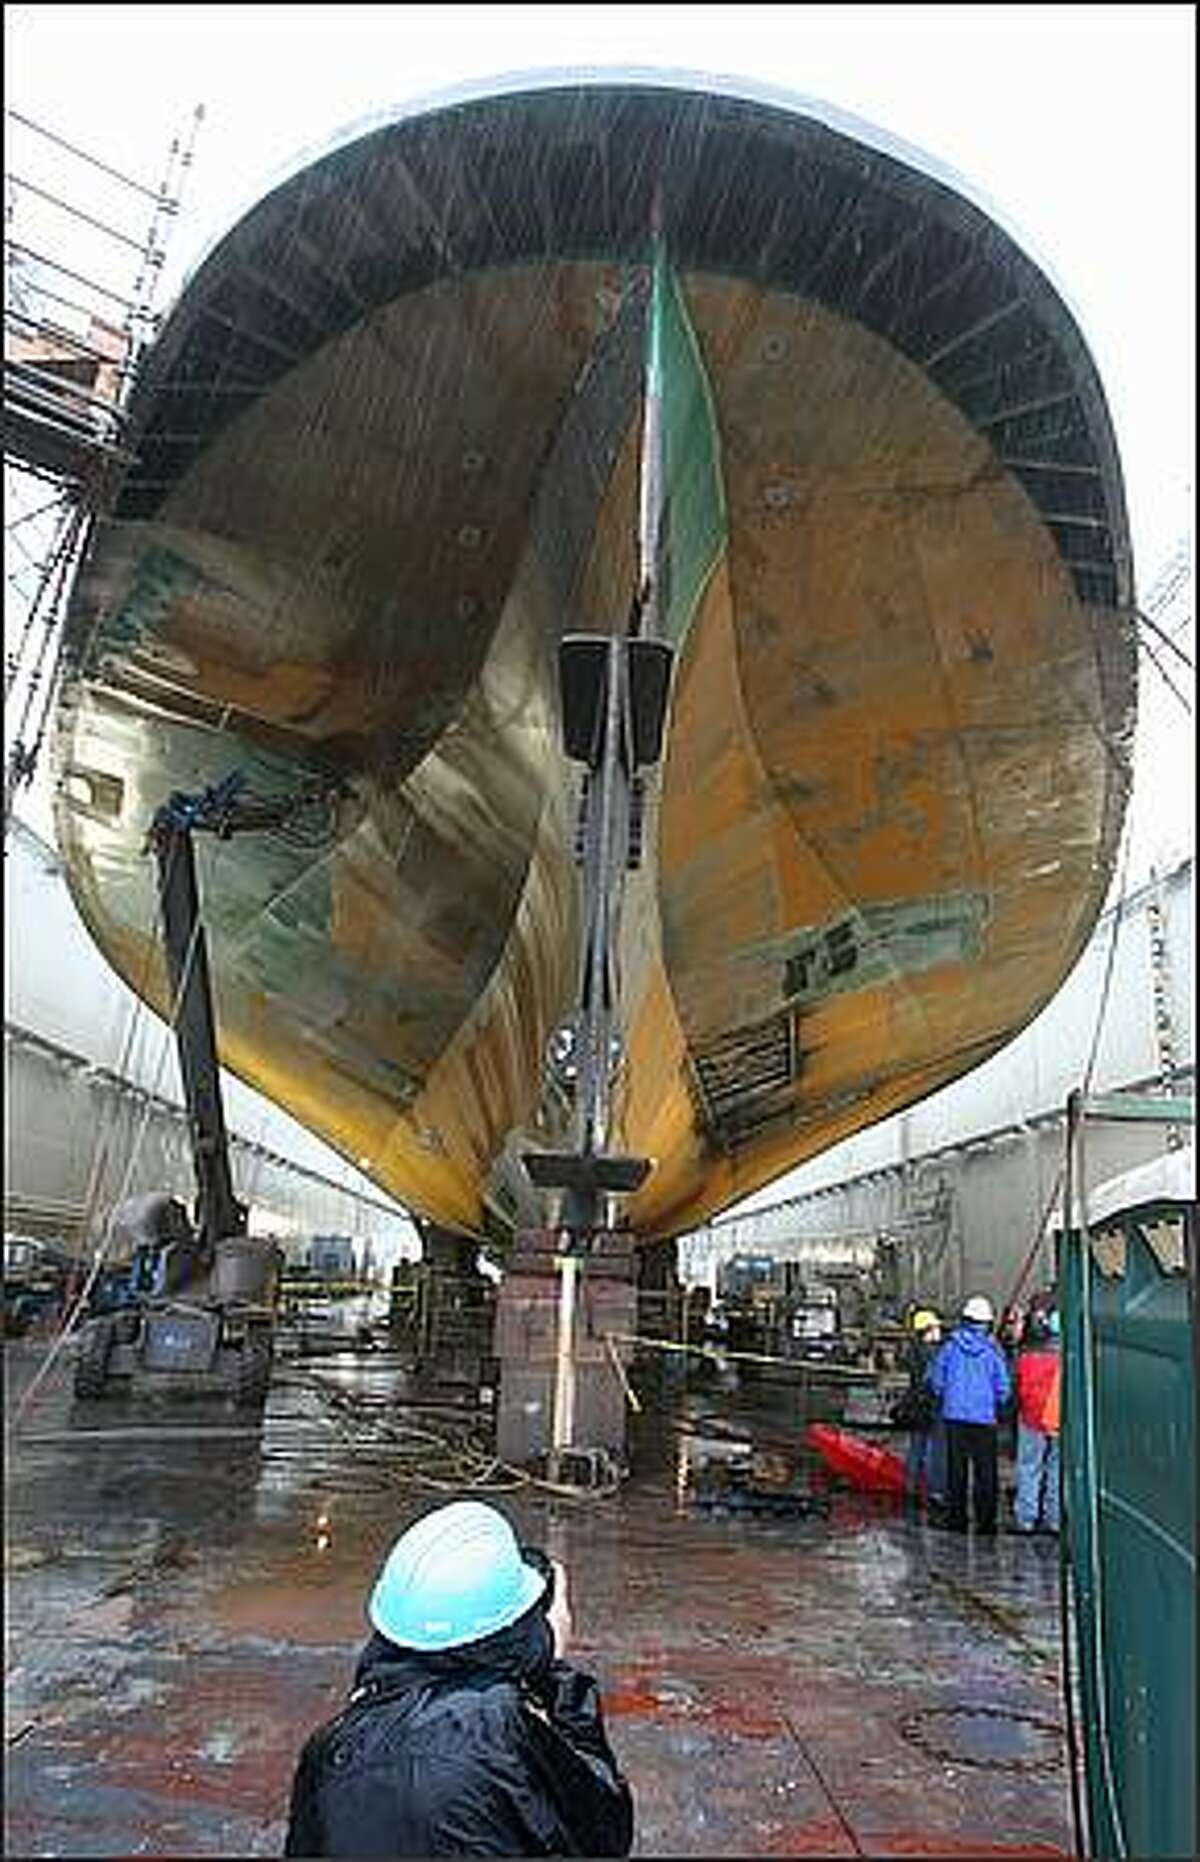 The hull of the Quinault in dry dock at Todd Shipyards. after it was pulled out of service. December 3, 2007.